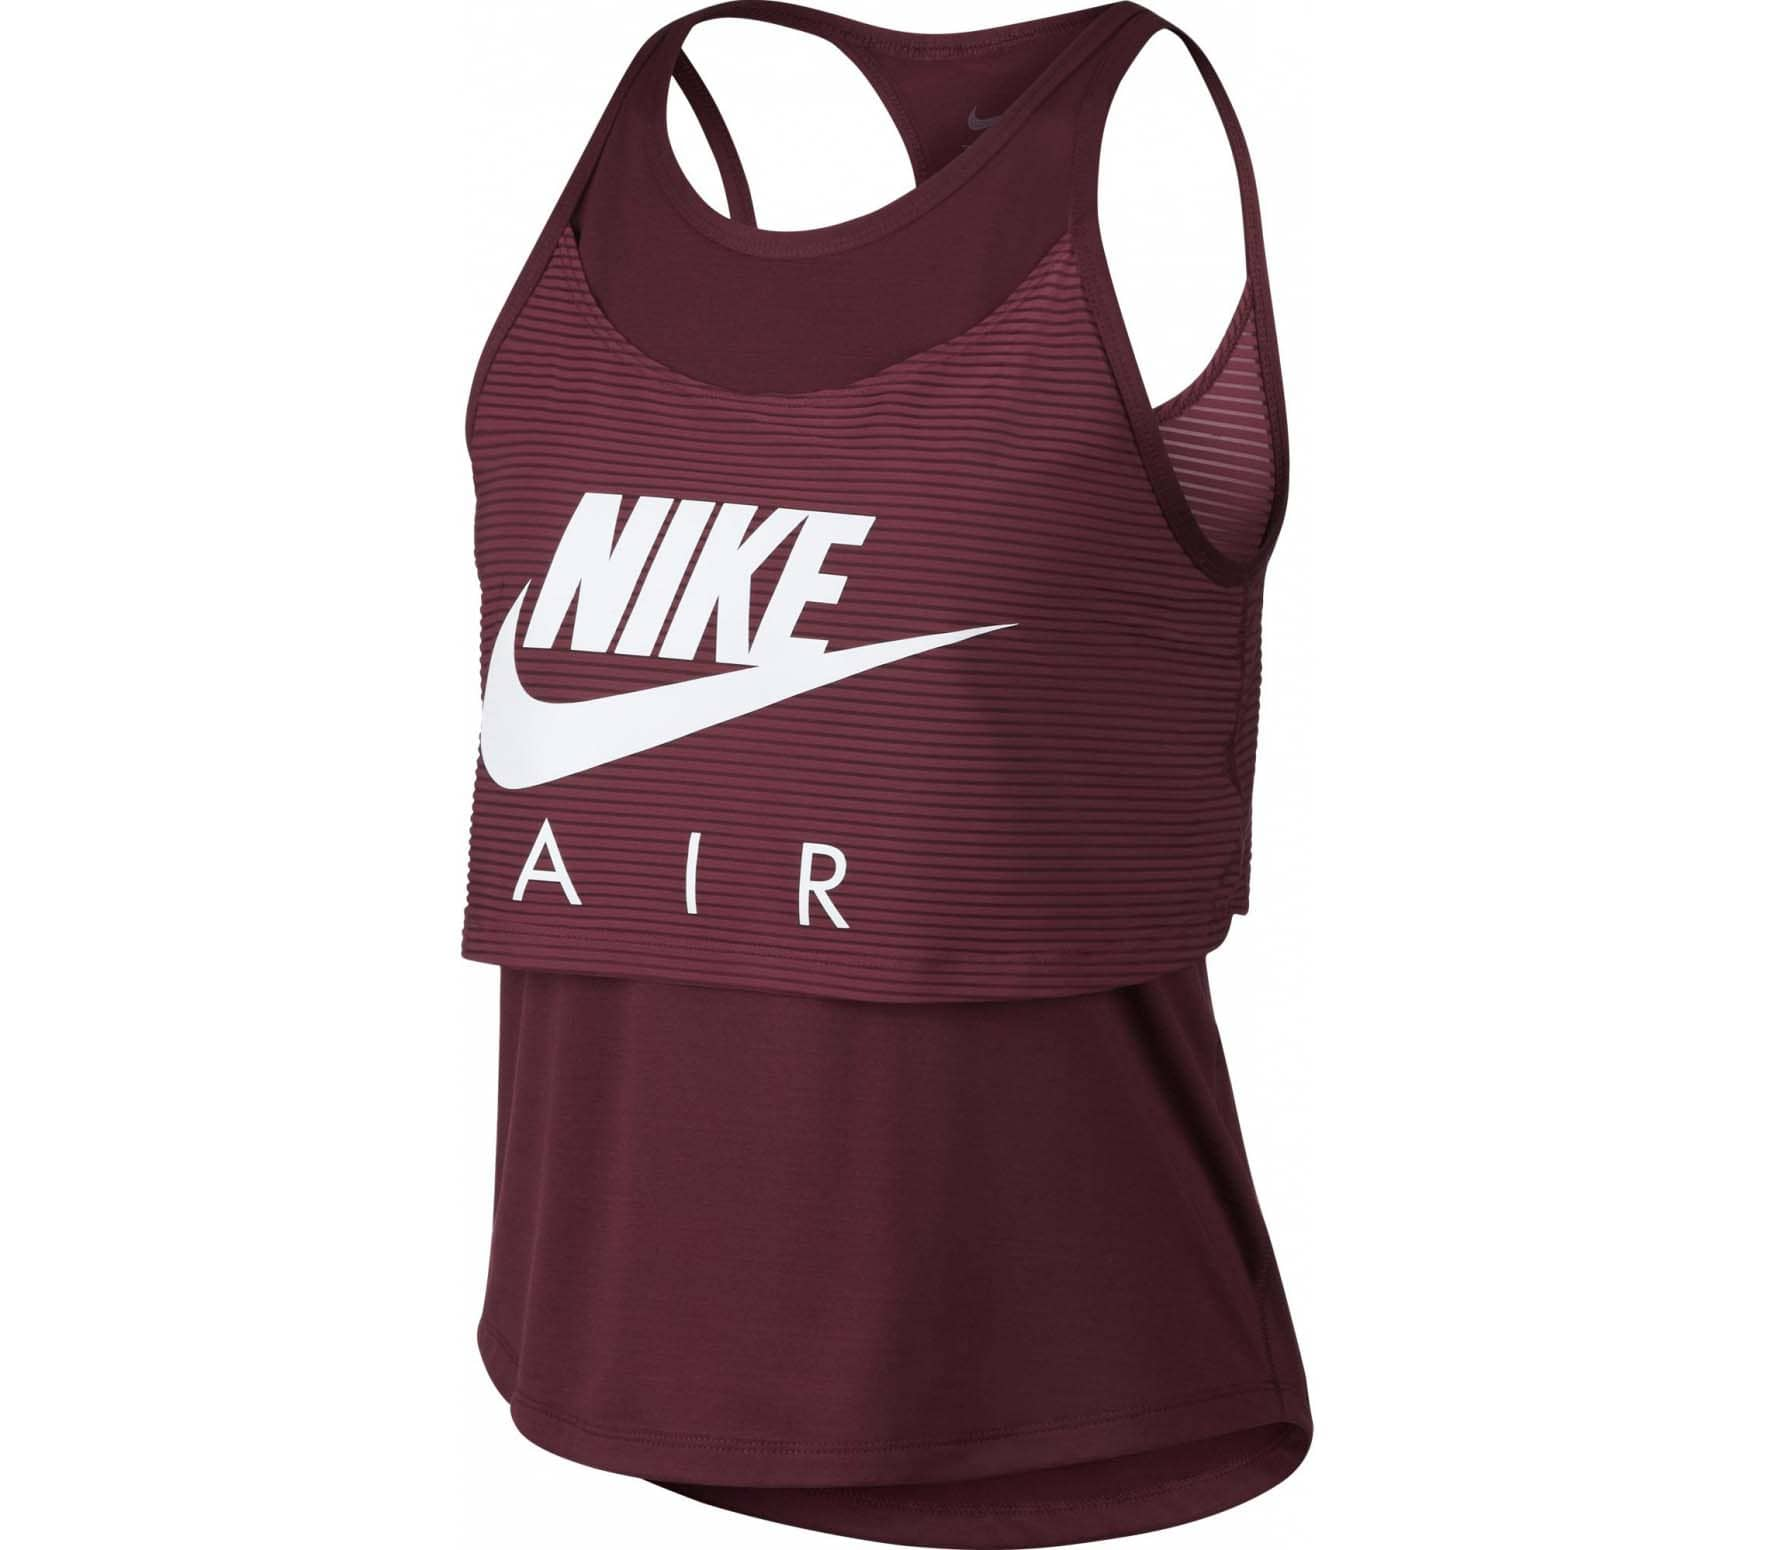 check out 09b54 637de Nike - Air Graphic women s running tank top top (weinrot)